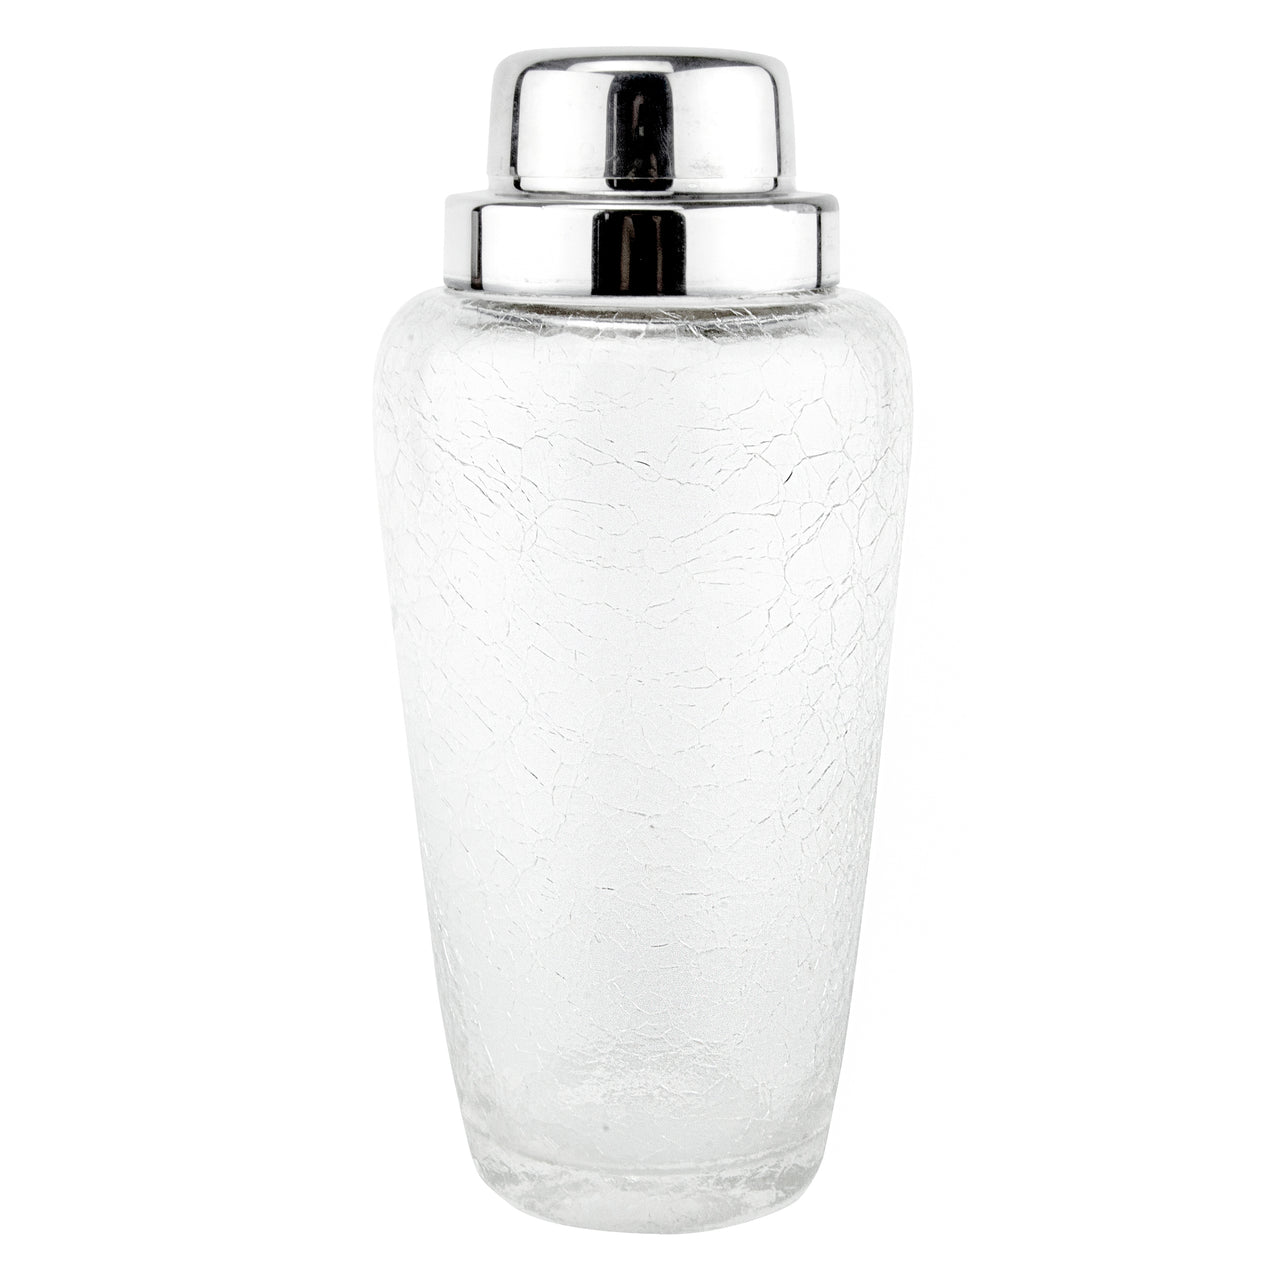 Kristall Crackle Glass Cocktail Shaker